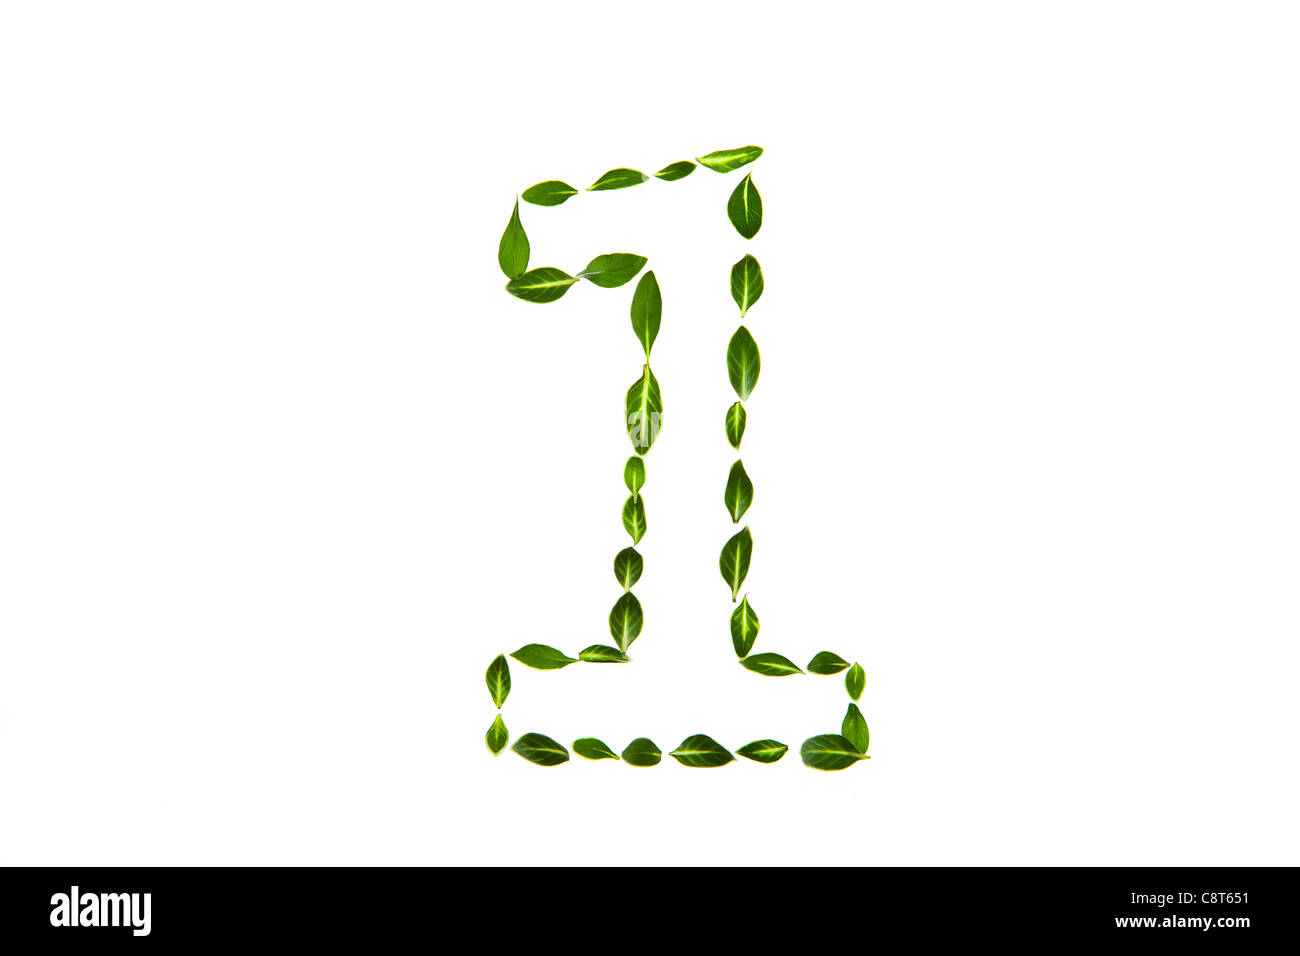 Number 1 Drawn With Leafs - Stock Image